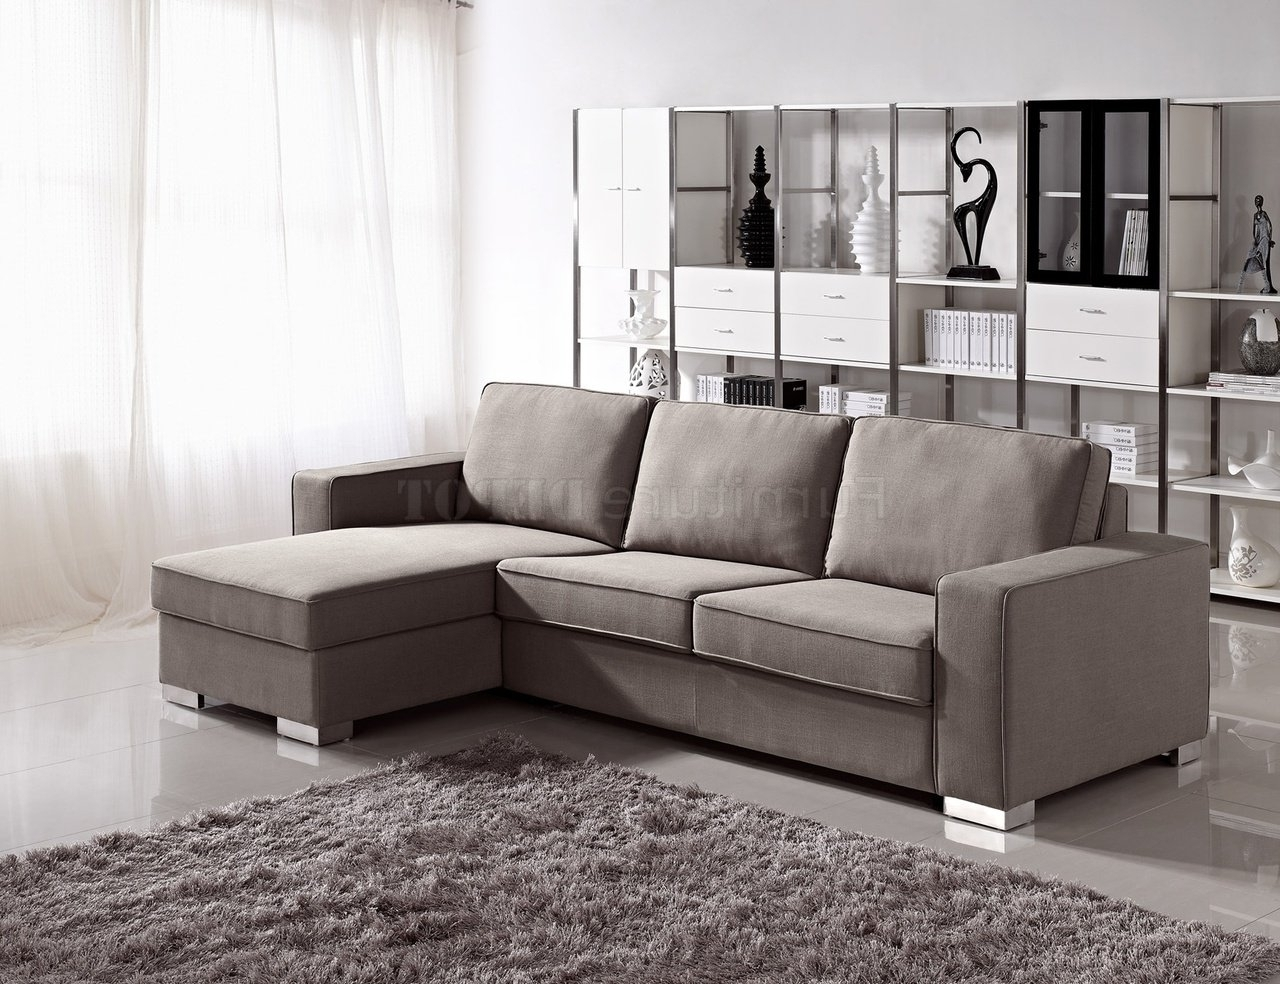 Most Popular Convertible Sectional Sofas Pertaining To Sectional Sofa Design: Adorable Convertible Sectional Sofa Bed (View 10 of 20)